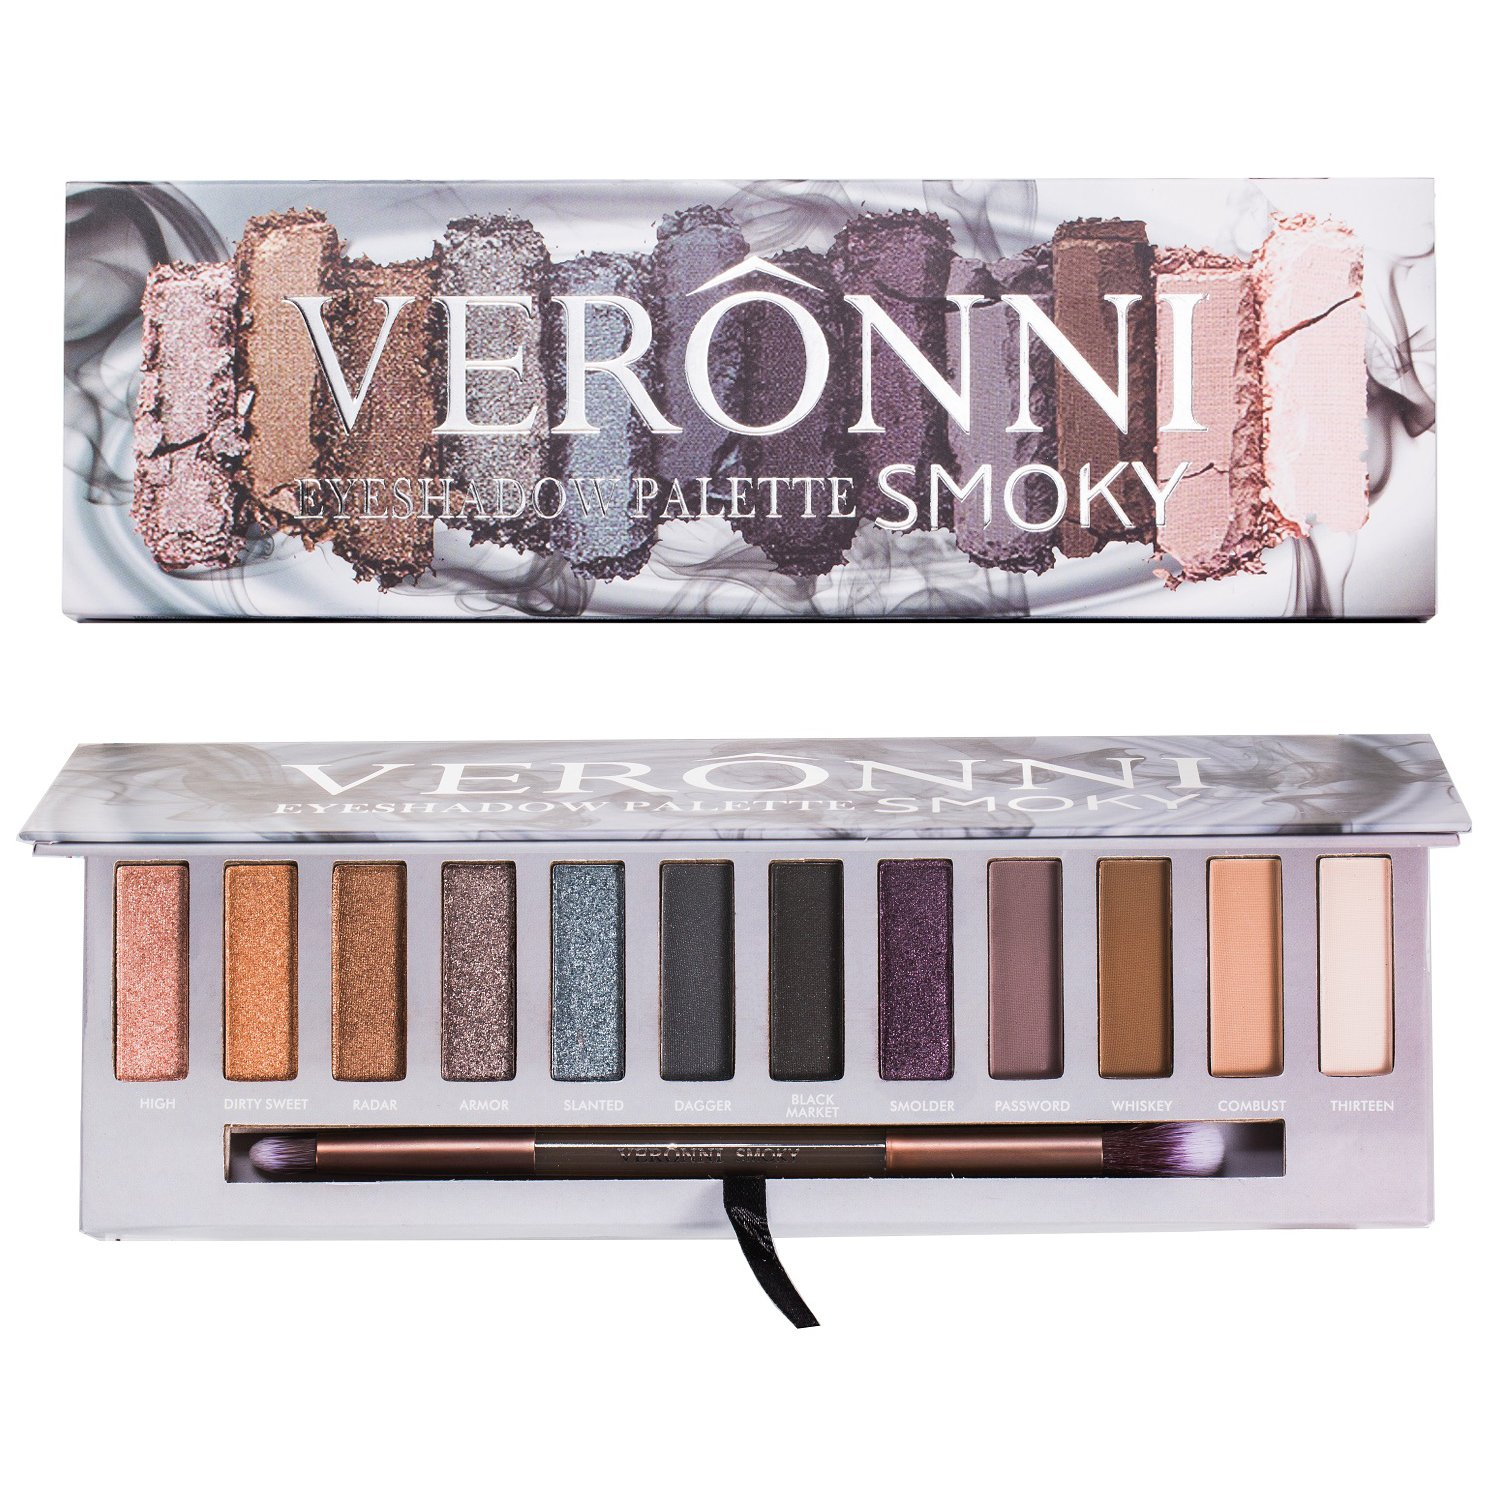 12 Colors Highly Pigmented Pressed Shimmer & Matte Eyeshadow Palette -  Natural Smokey Colorful